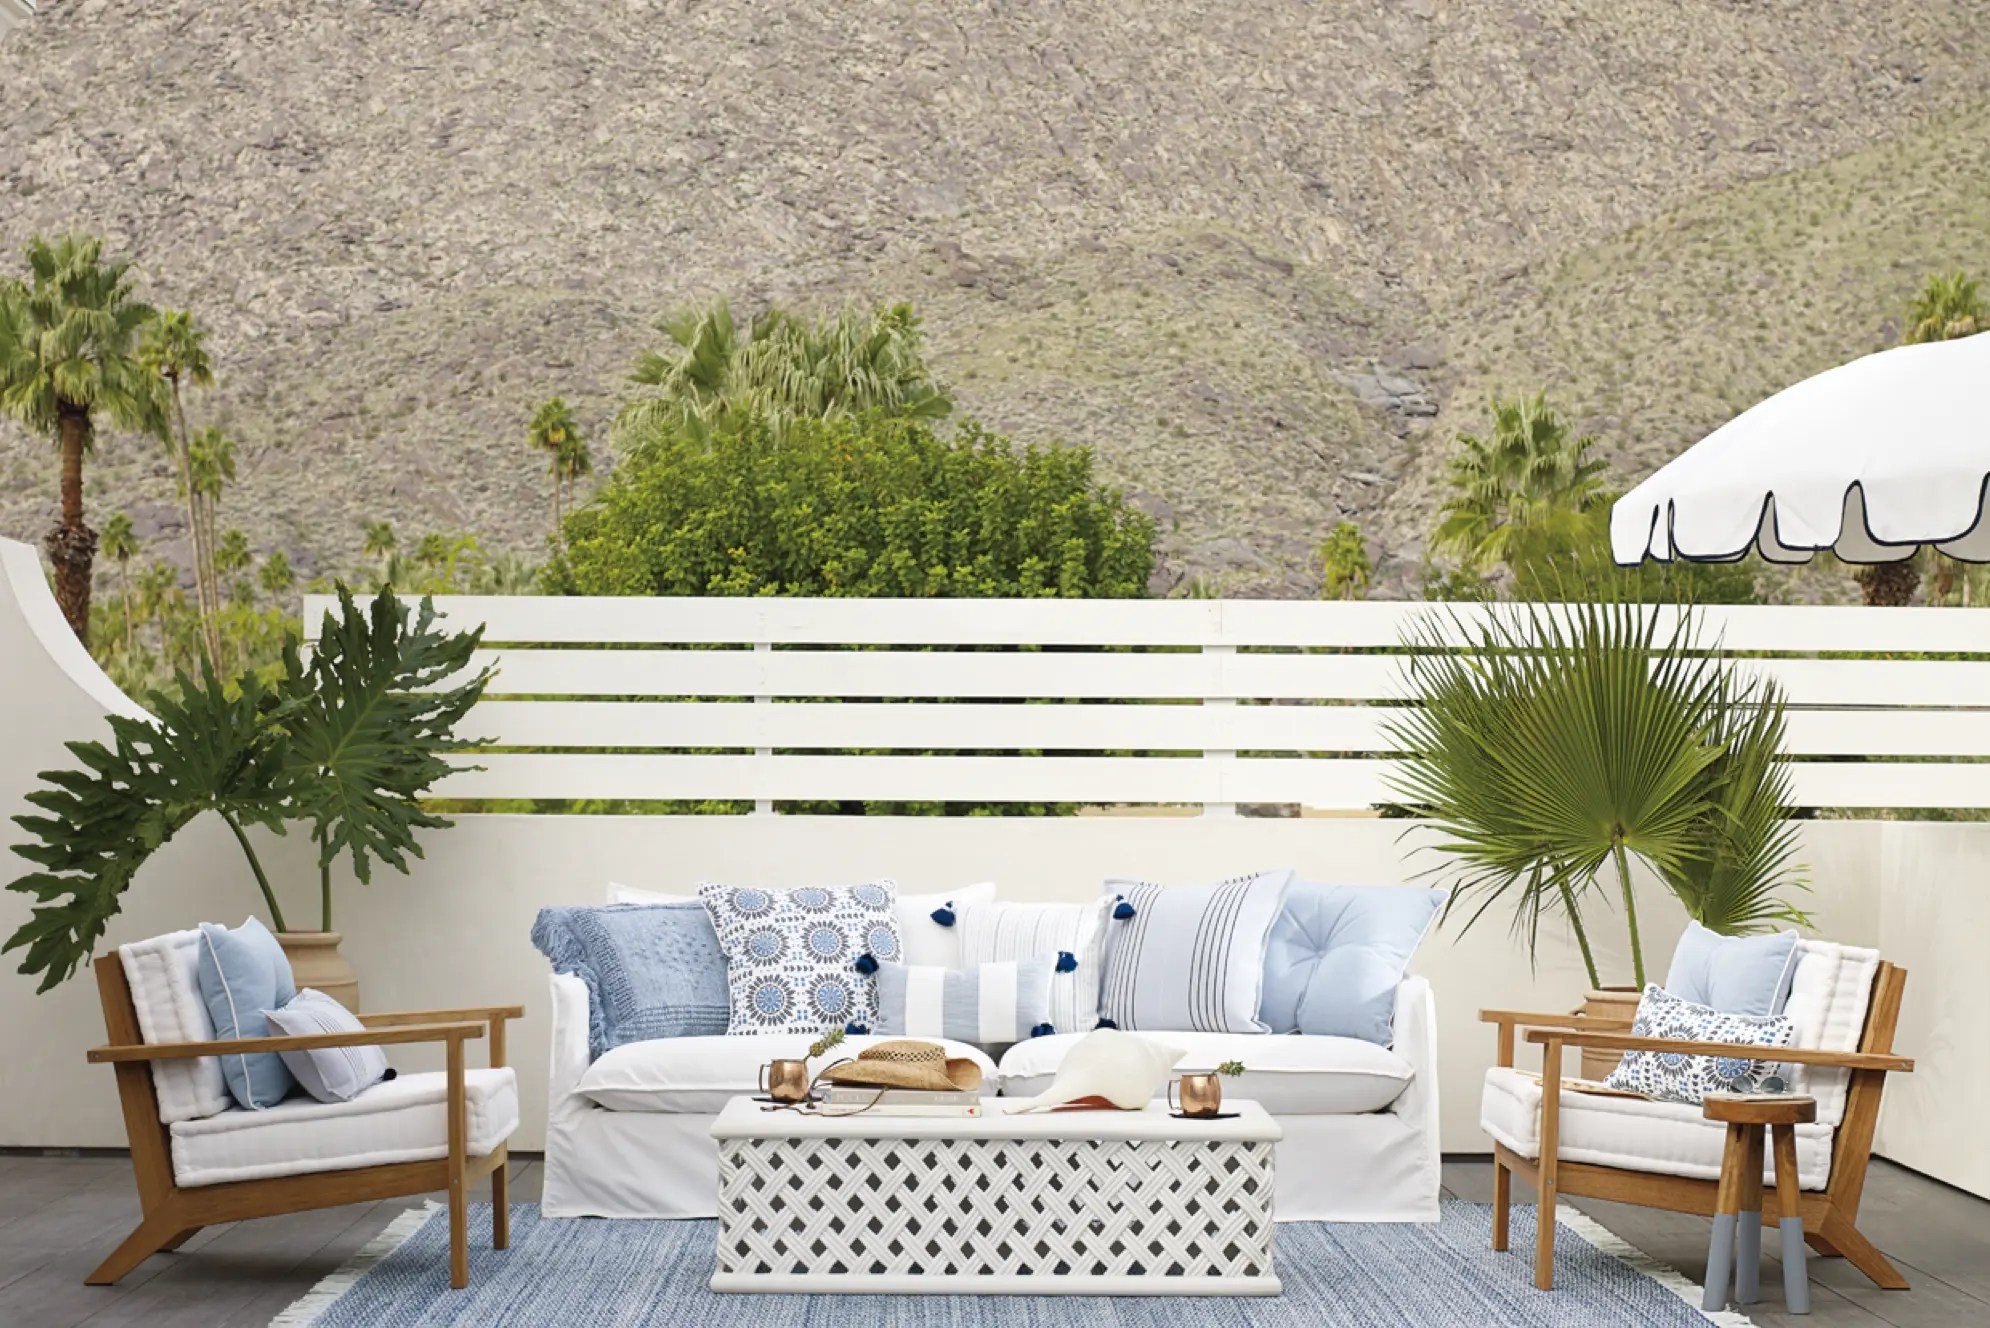 patio furniture layout for a large deck